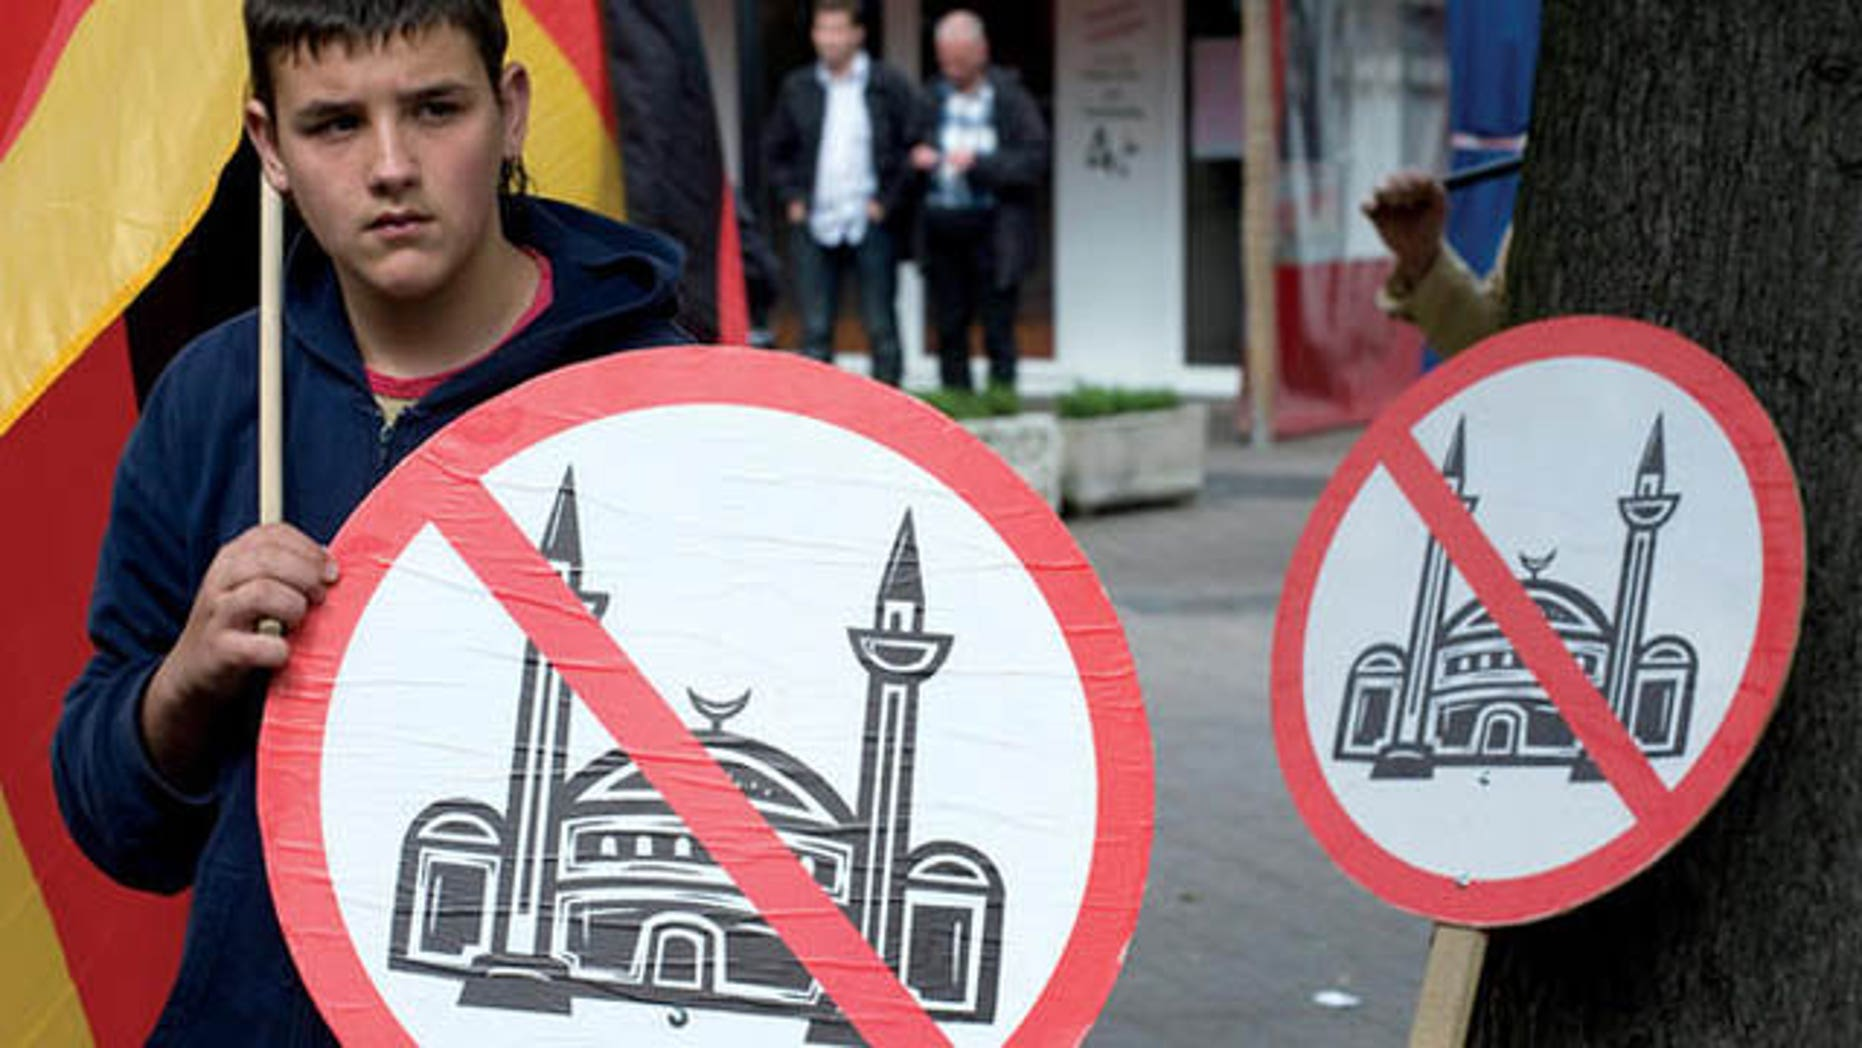 """The book """"Germany is Doing Away With Itself,"""" written by Thilo Sarrazin, continues to tap into growing anti-Muslim sentiment in Germany."""